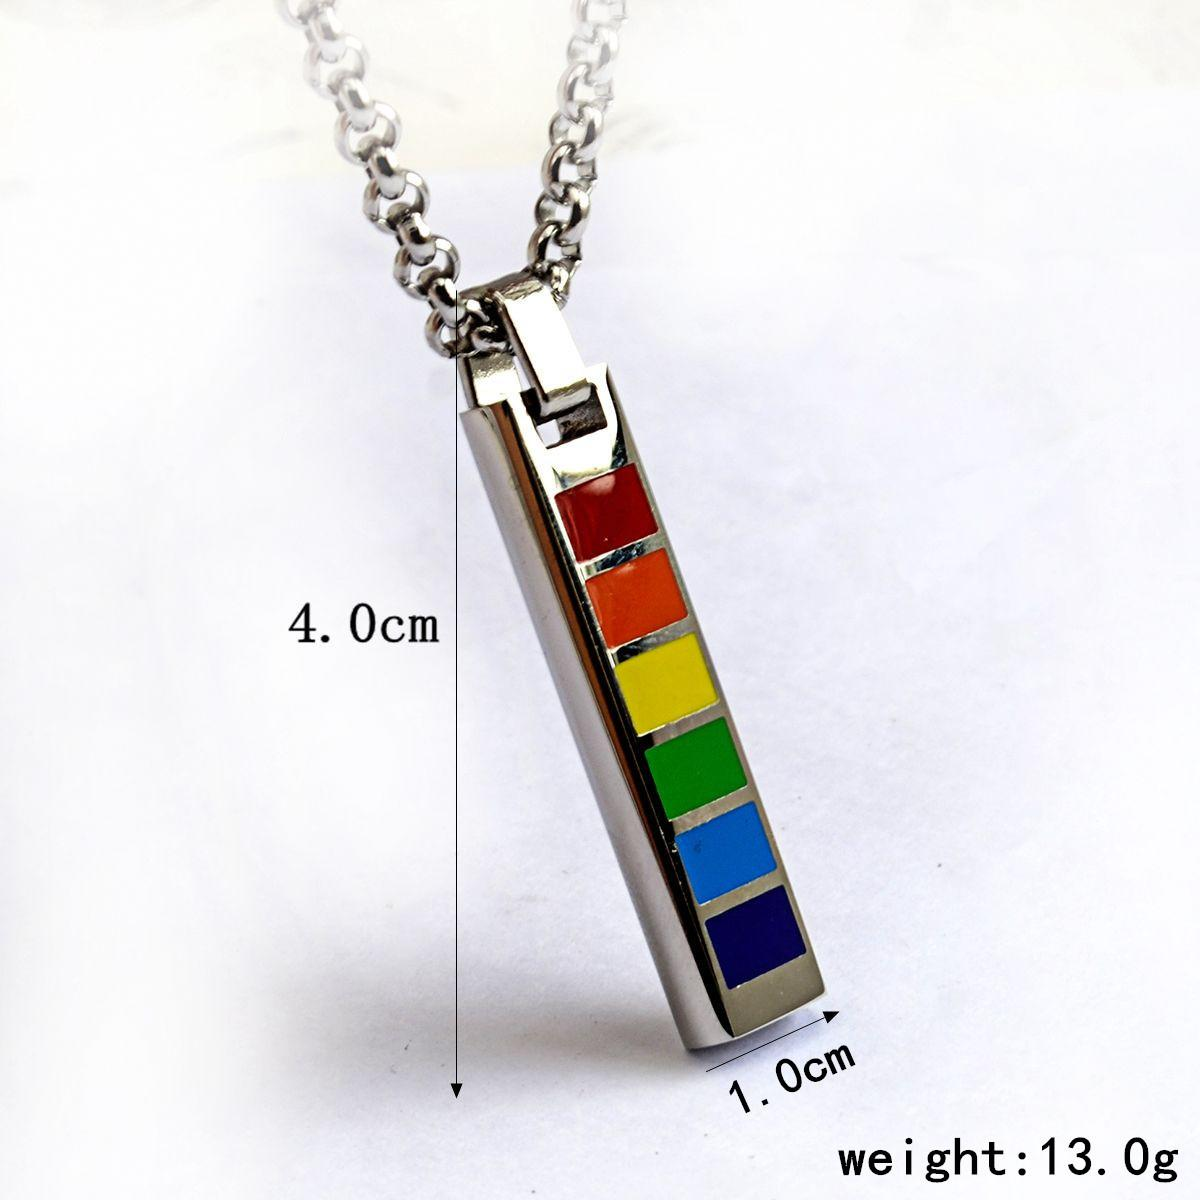 stainless distribution gay wholesale necklace containing jewelry product chain silver steel rectangular pendant rainbow